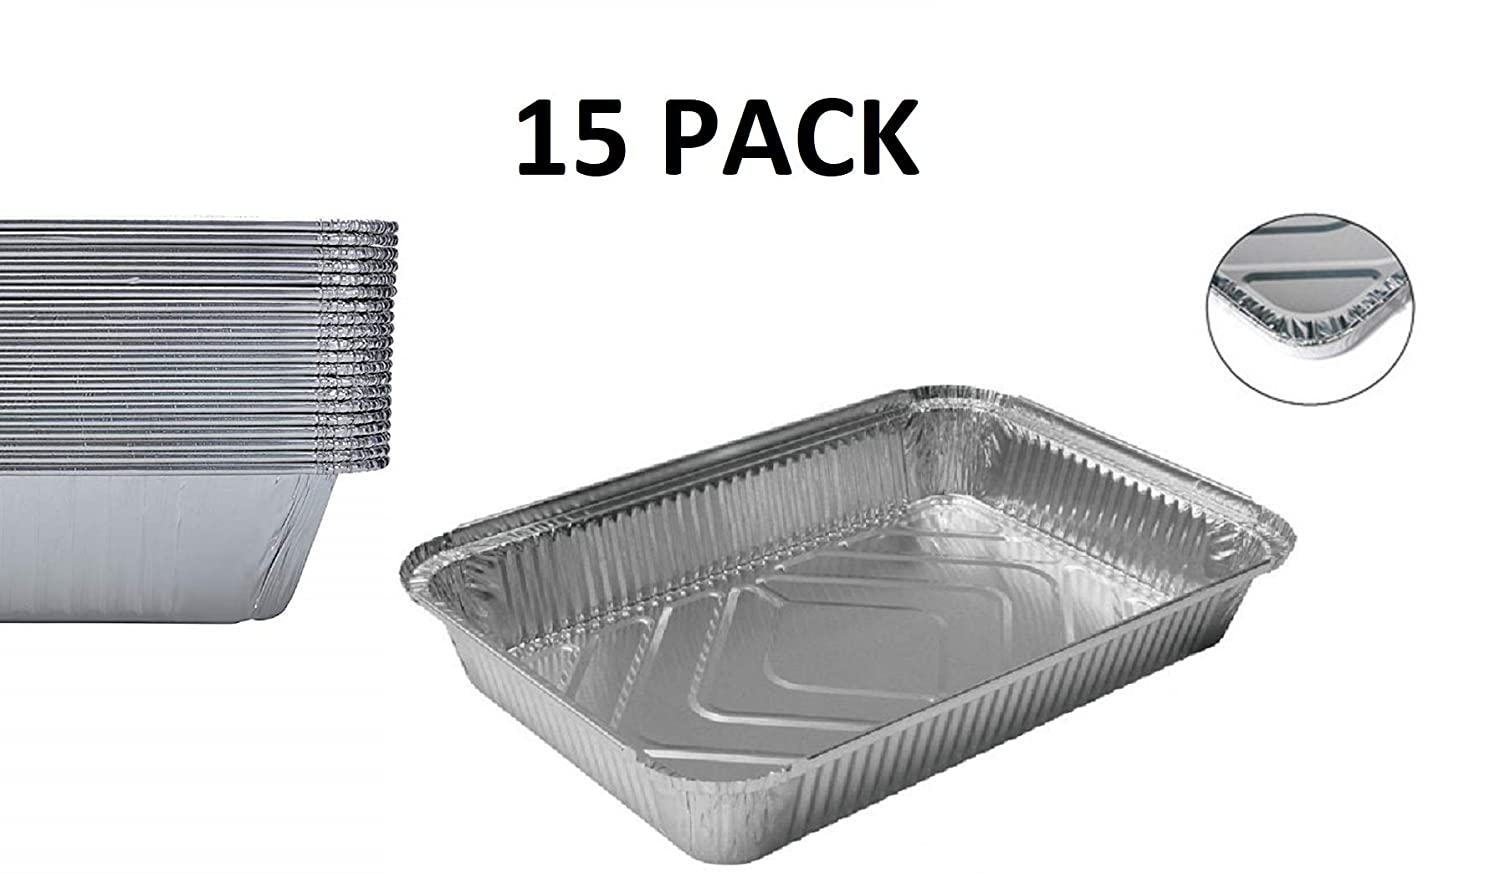 Aluminum Foil Grill Drip Pans Set of 15 Pack-Disposable Steam Table Deep Trays-Meal Cooking,Baking,Roasting,Broiling,Heating Buffet Trays Tin Pans-Half Size Chafing Pans 9 x 13 inch